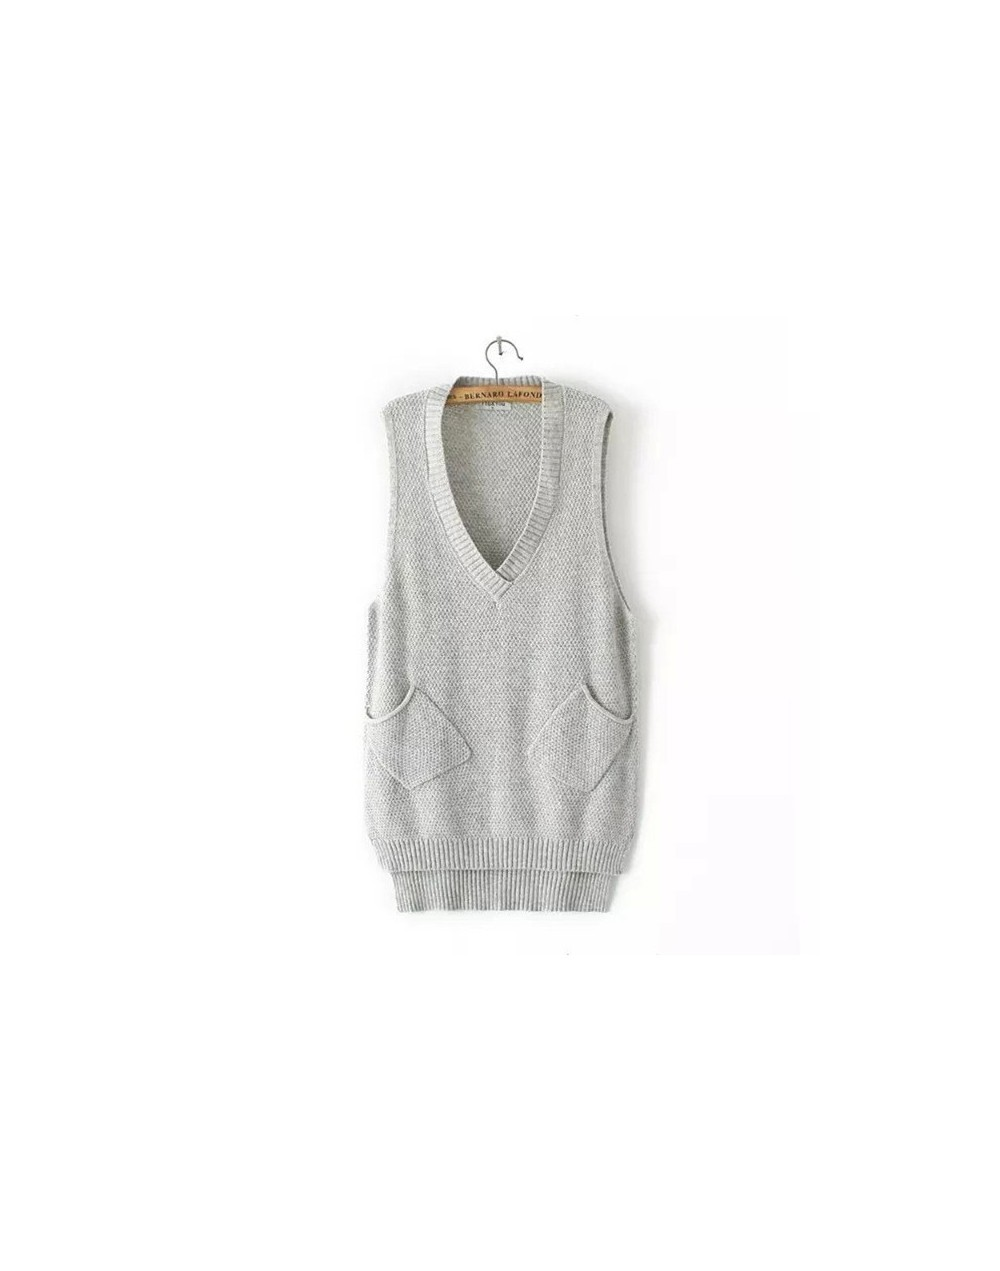 V Neck Long Vest Knitted Women Sweaters And Pullovers Woman Sleeveless Casual Pocket Sweater Pull Femme - Gray - 4W3954057087-2